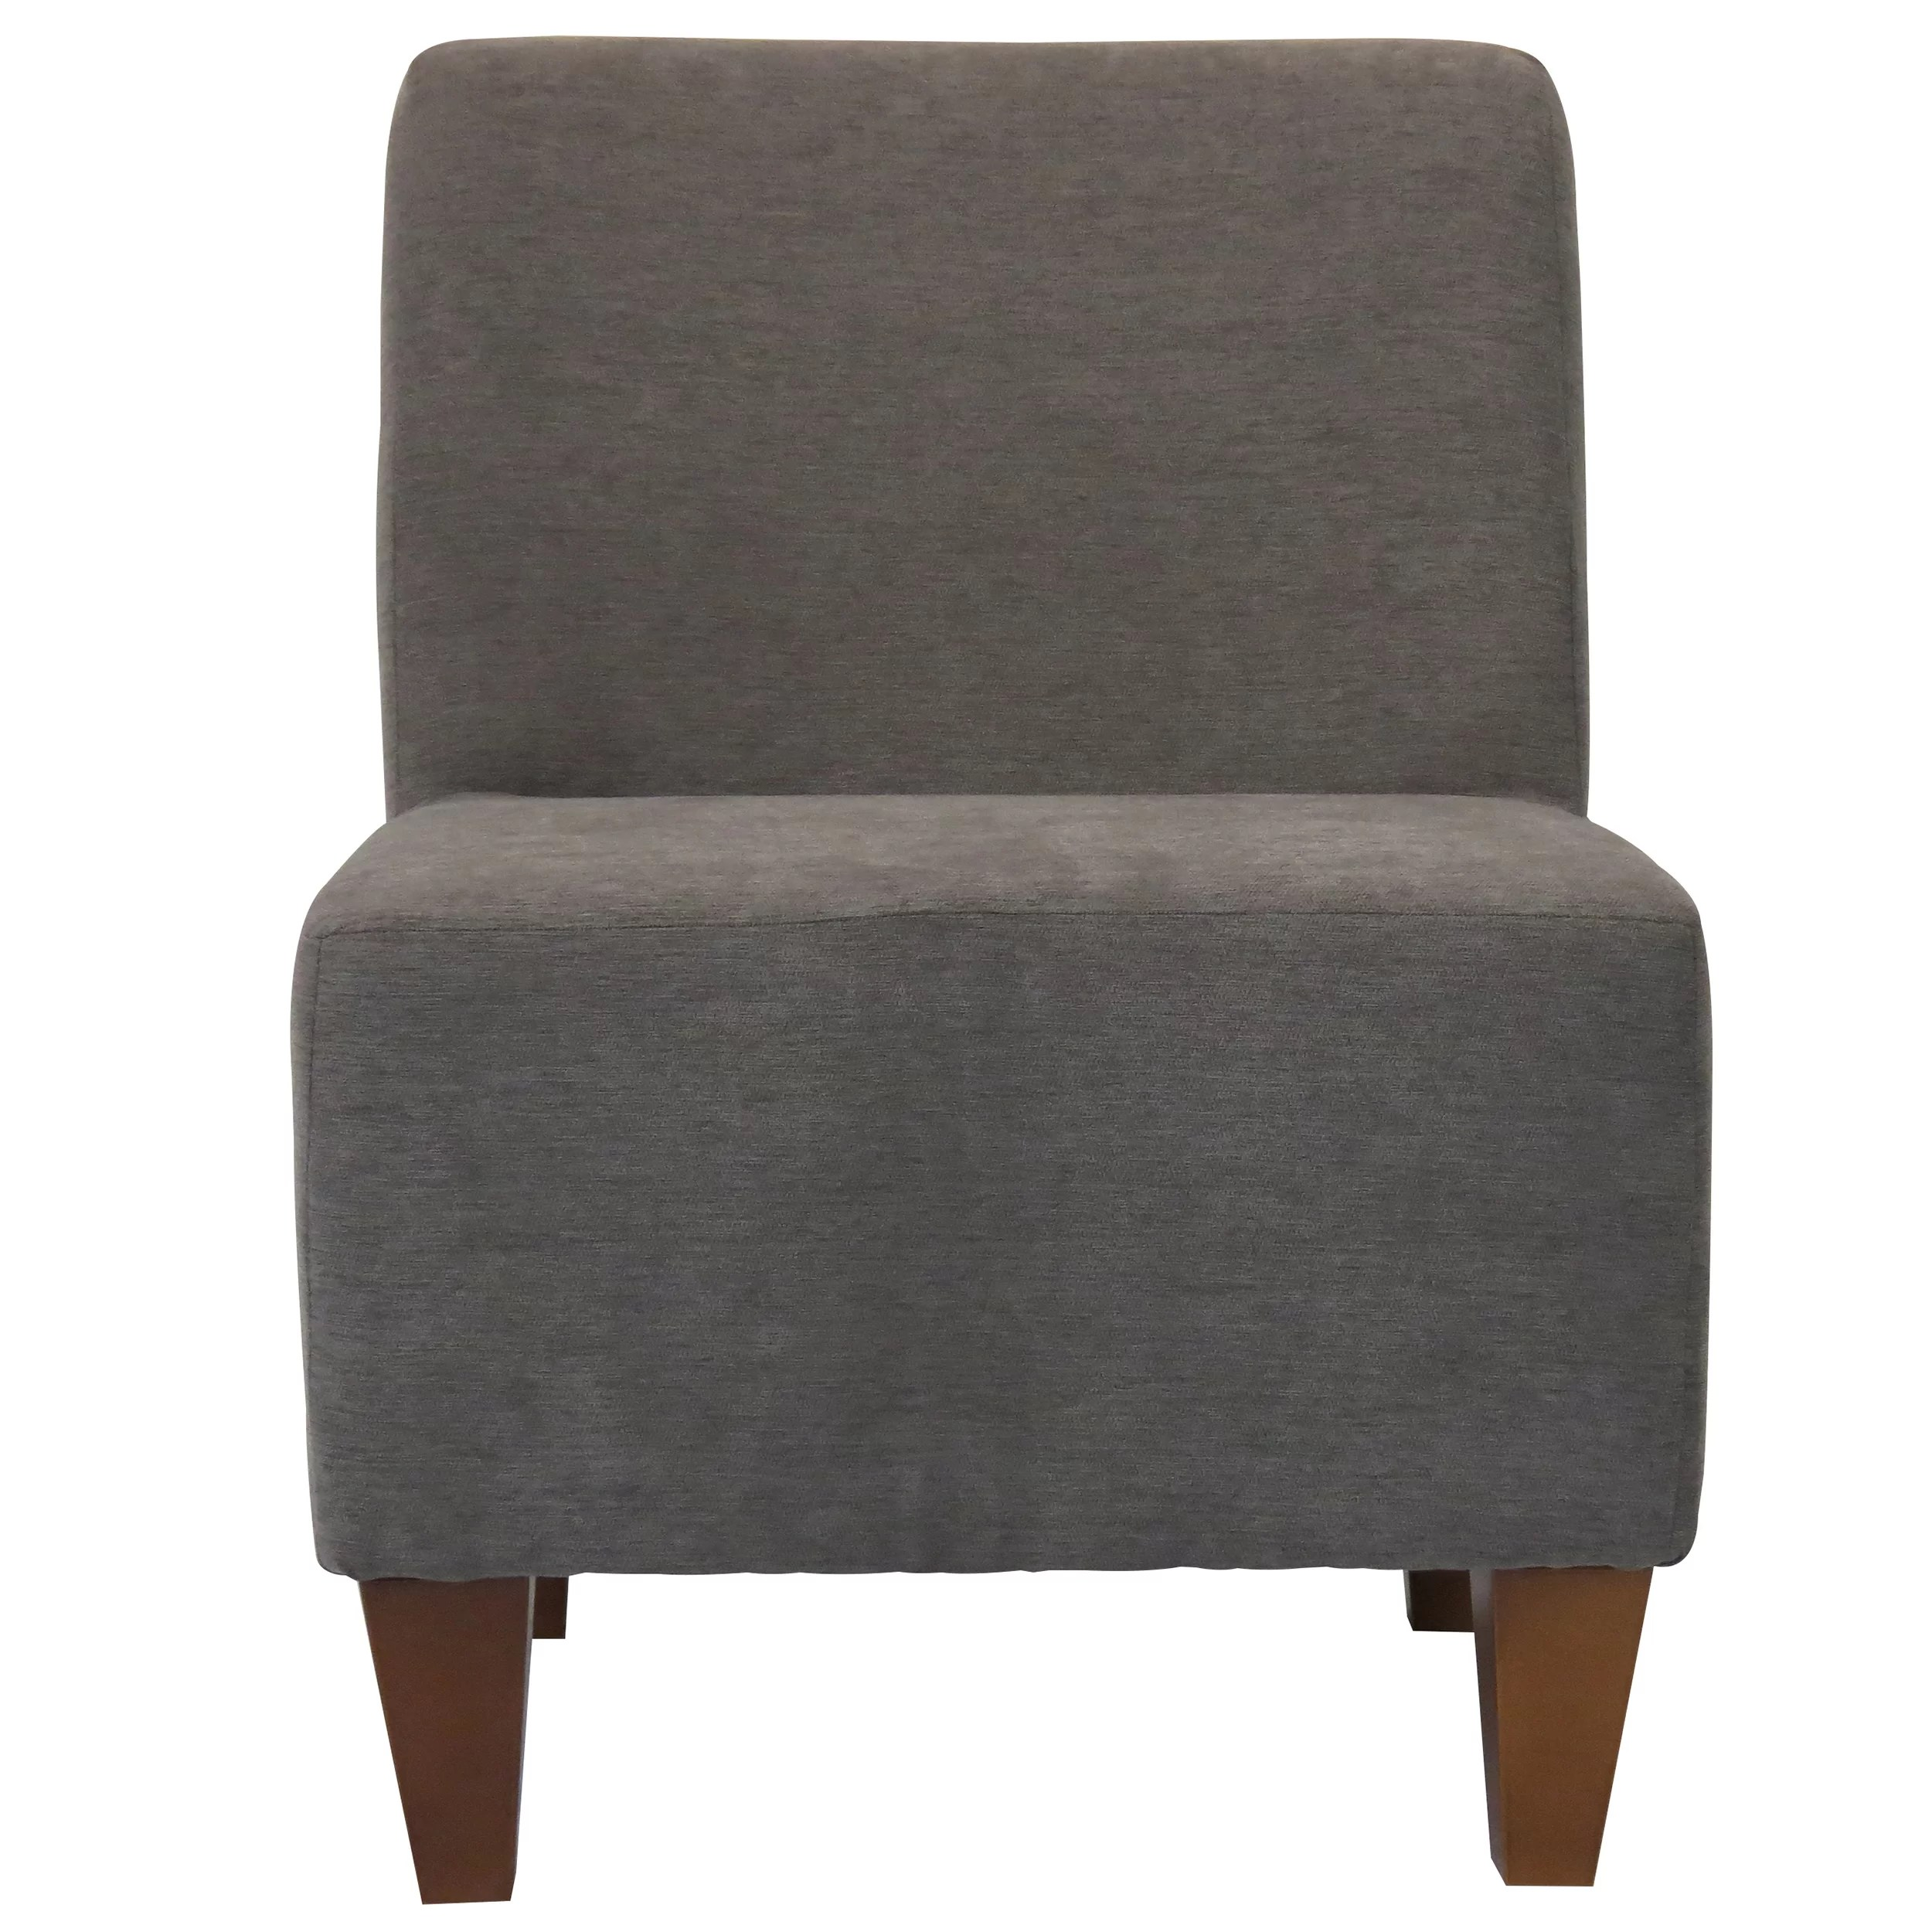 slipcover for armless slipper chair cover rentals in memphis tn fox hill trading penelope and reviews